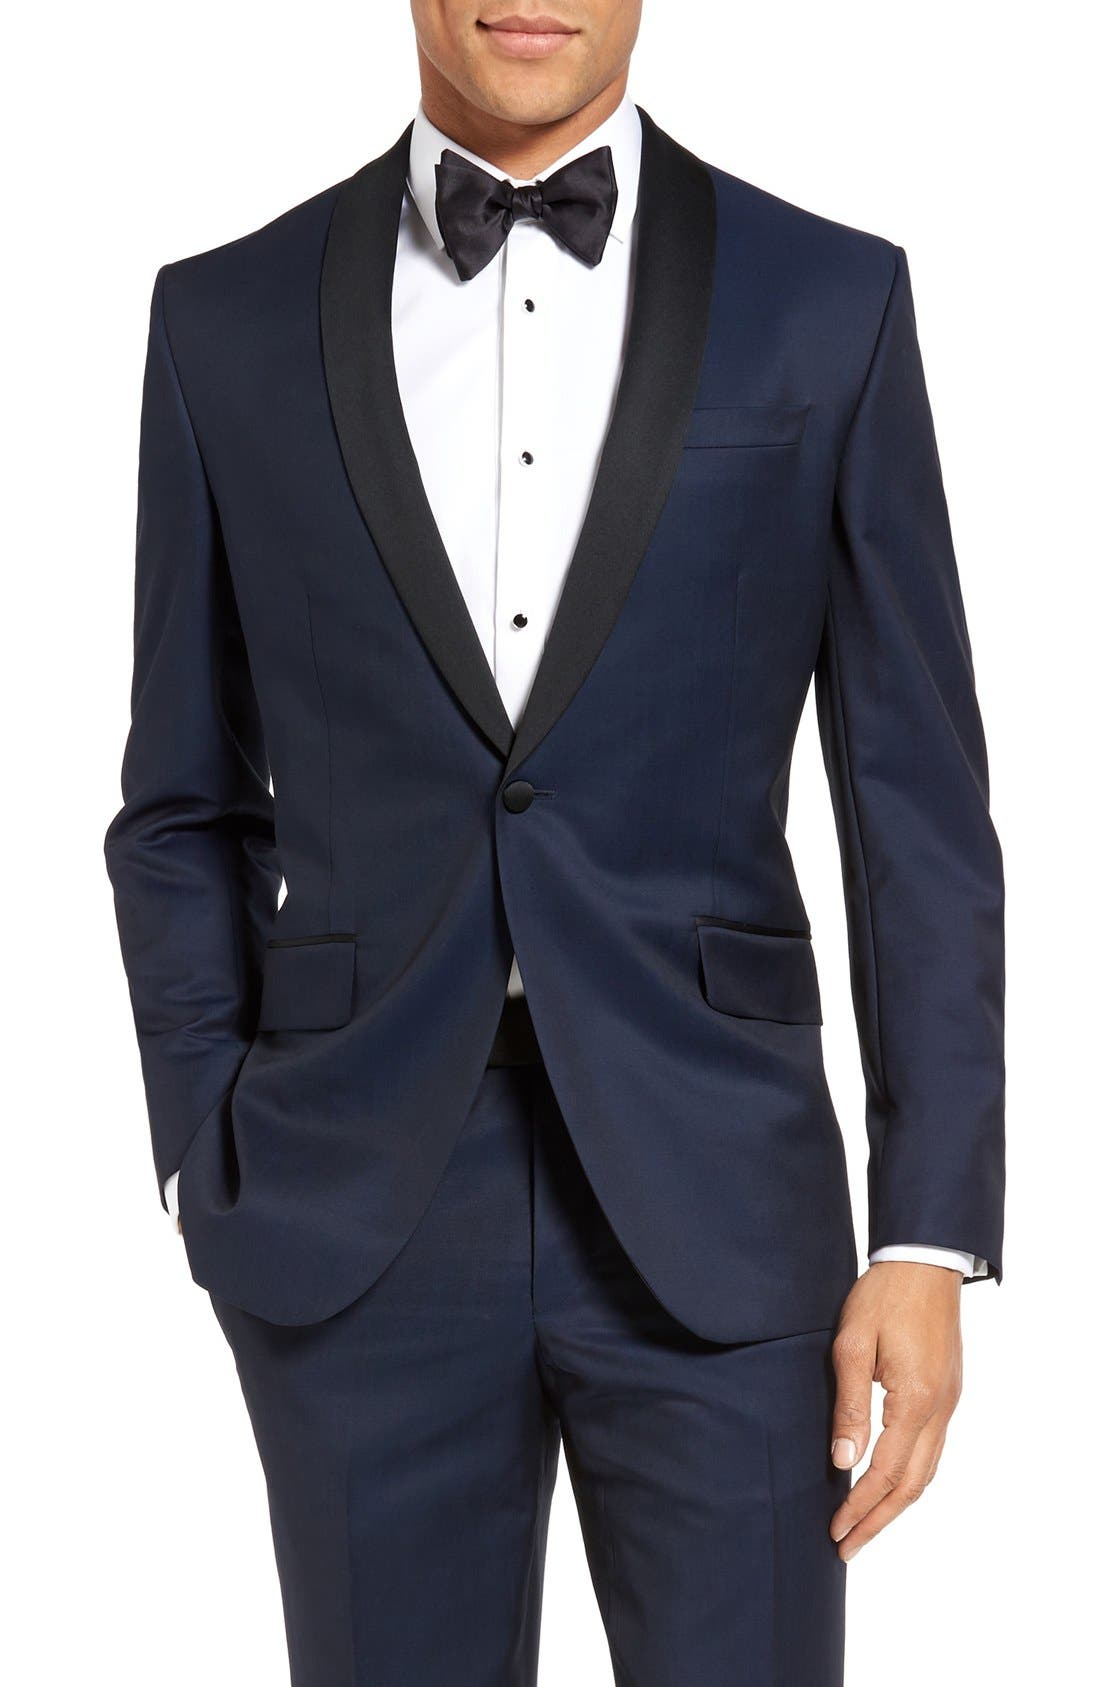 TED BAKER LONDON, Josh Trim Fit Navy Shawl Lapel Tuxedo, Alternate thumbnail 7, color, NAVY BLUE